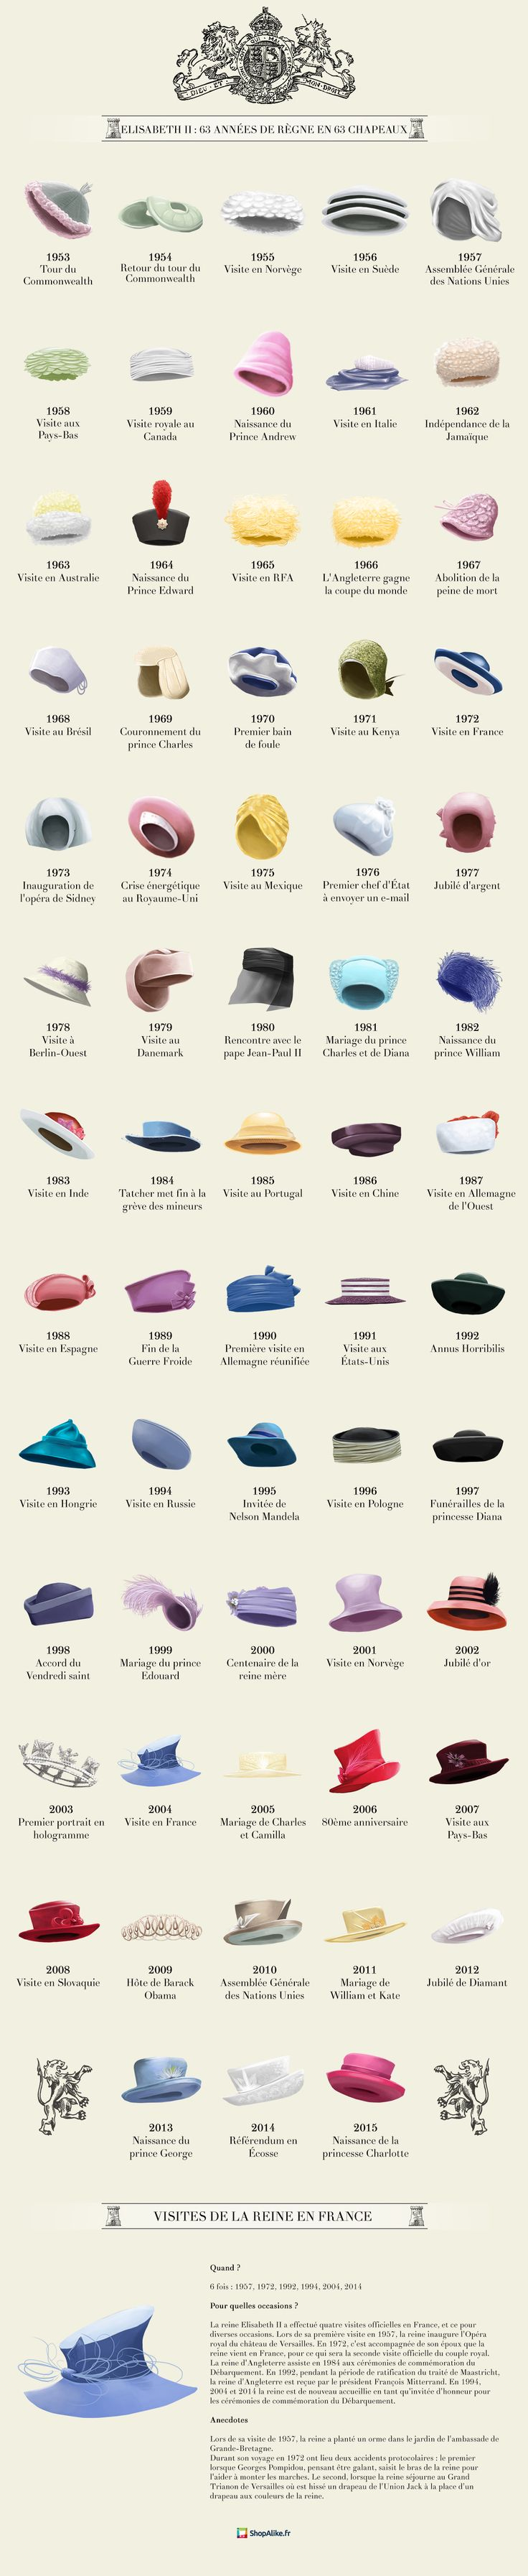 Queen Elizabeth's hats by year! A fun walk down memory lane. #royalhats #judithm